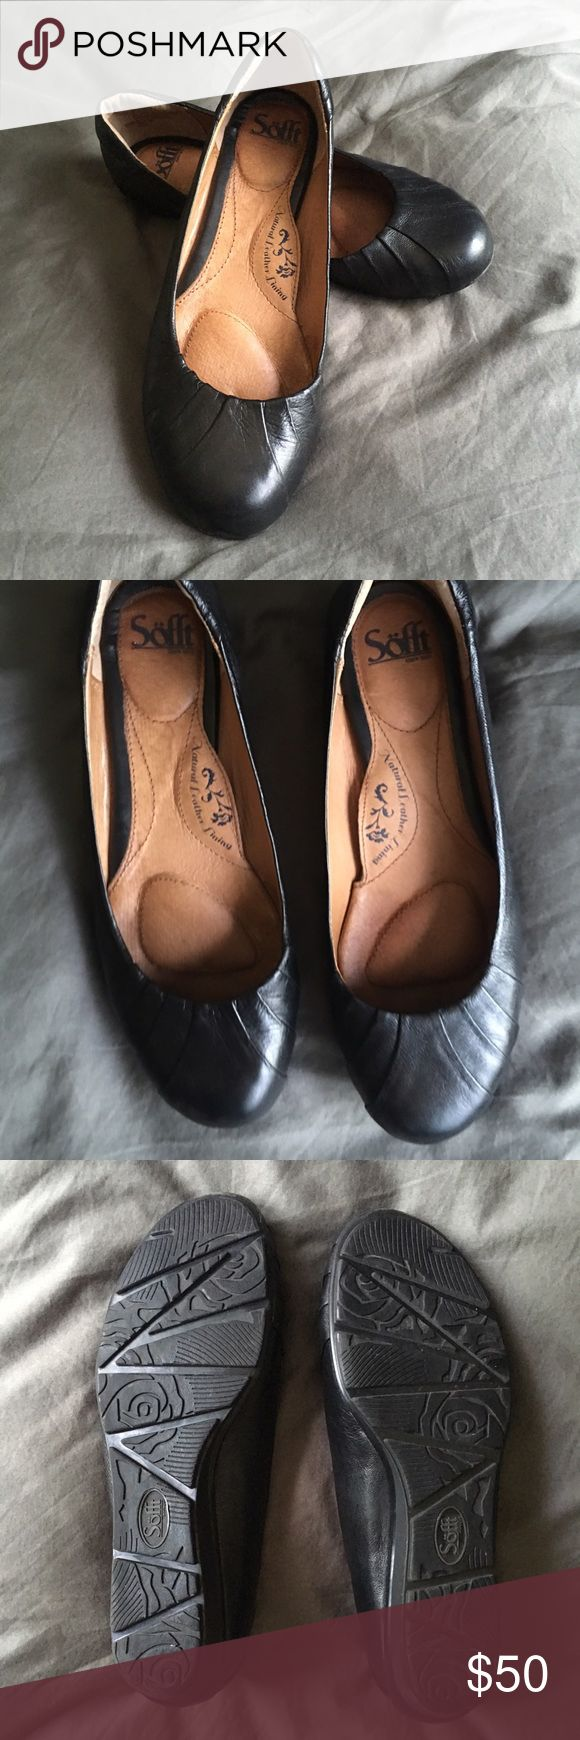 Sofft Vanna mini wedge flats These wear like tanks. I have worn them to the office for a few weeks now with no signs of wear at all. I love them but (TMI) they don't agree with my bunions ☹️ Leather, leather lined. Sofft Shoes Flats & Loafers